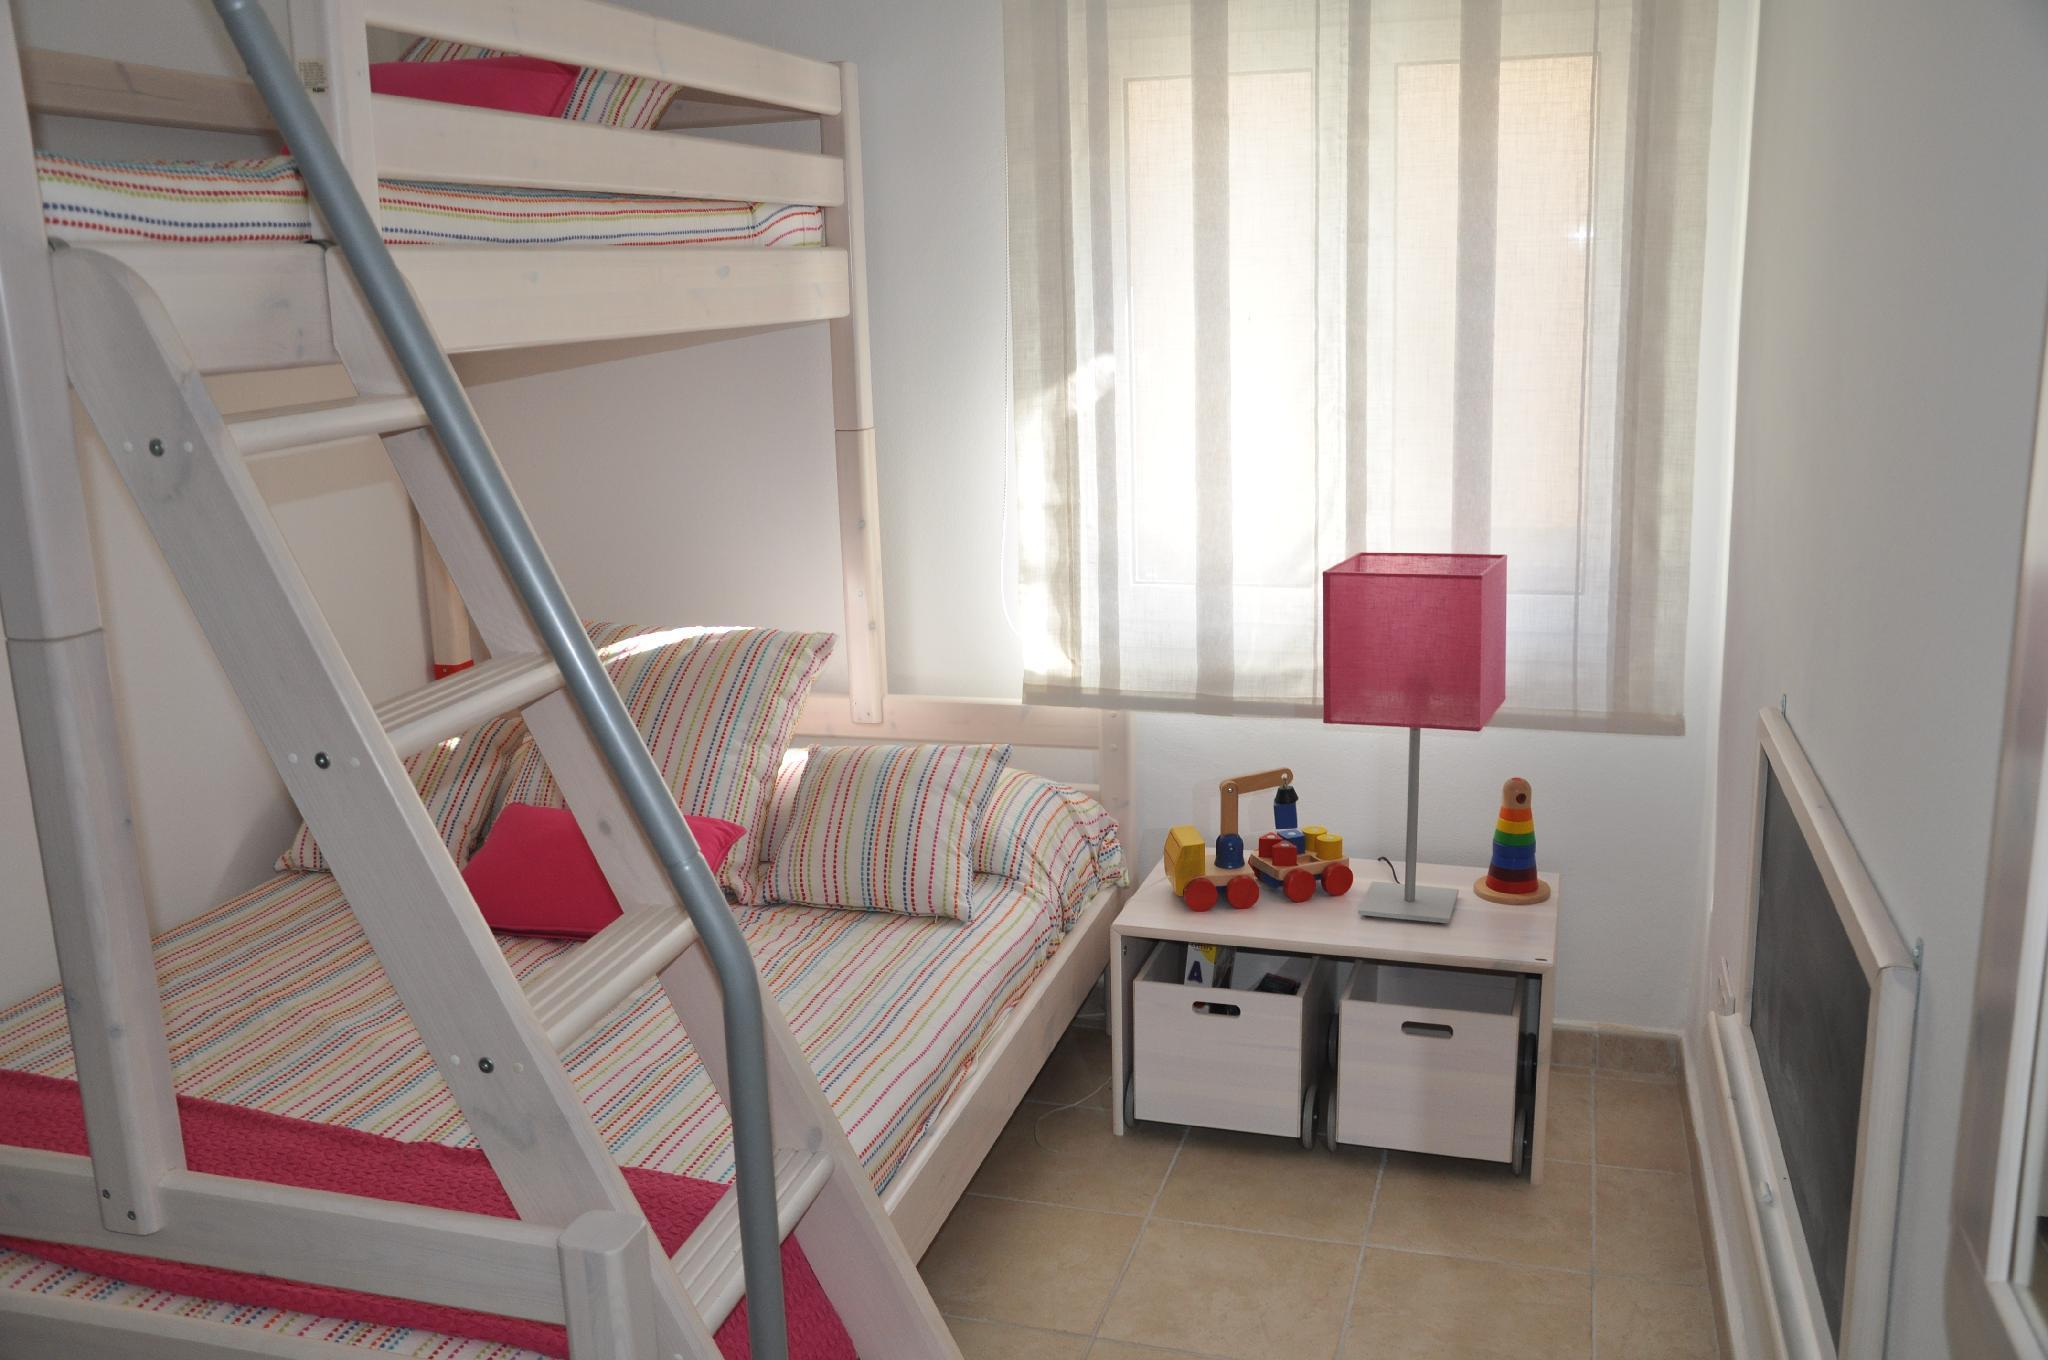 Mallorca | Holiday House for Rent | Del mar 37